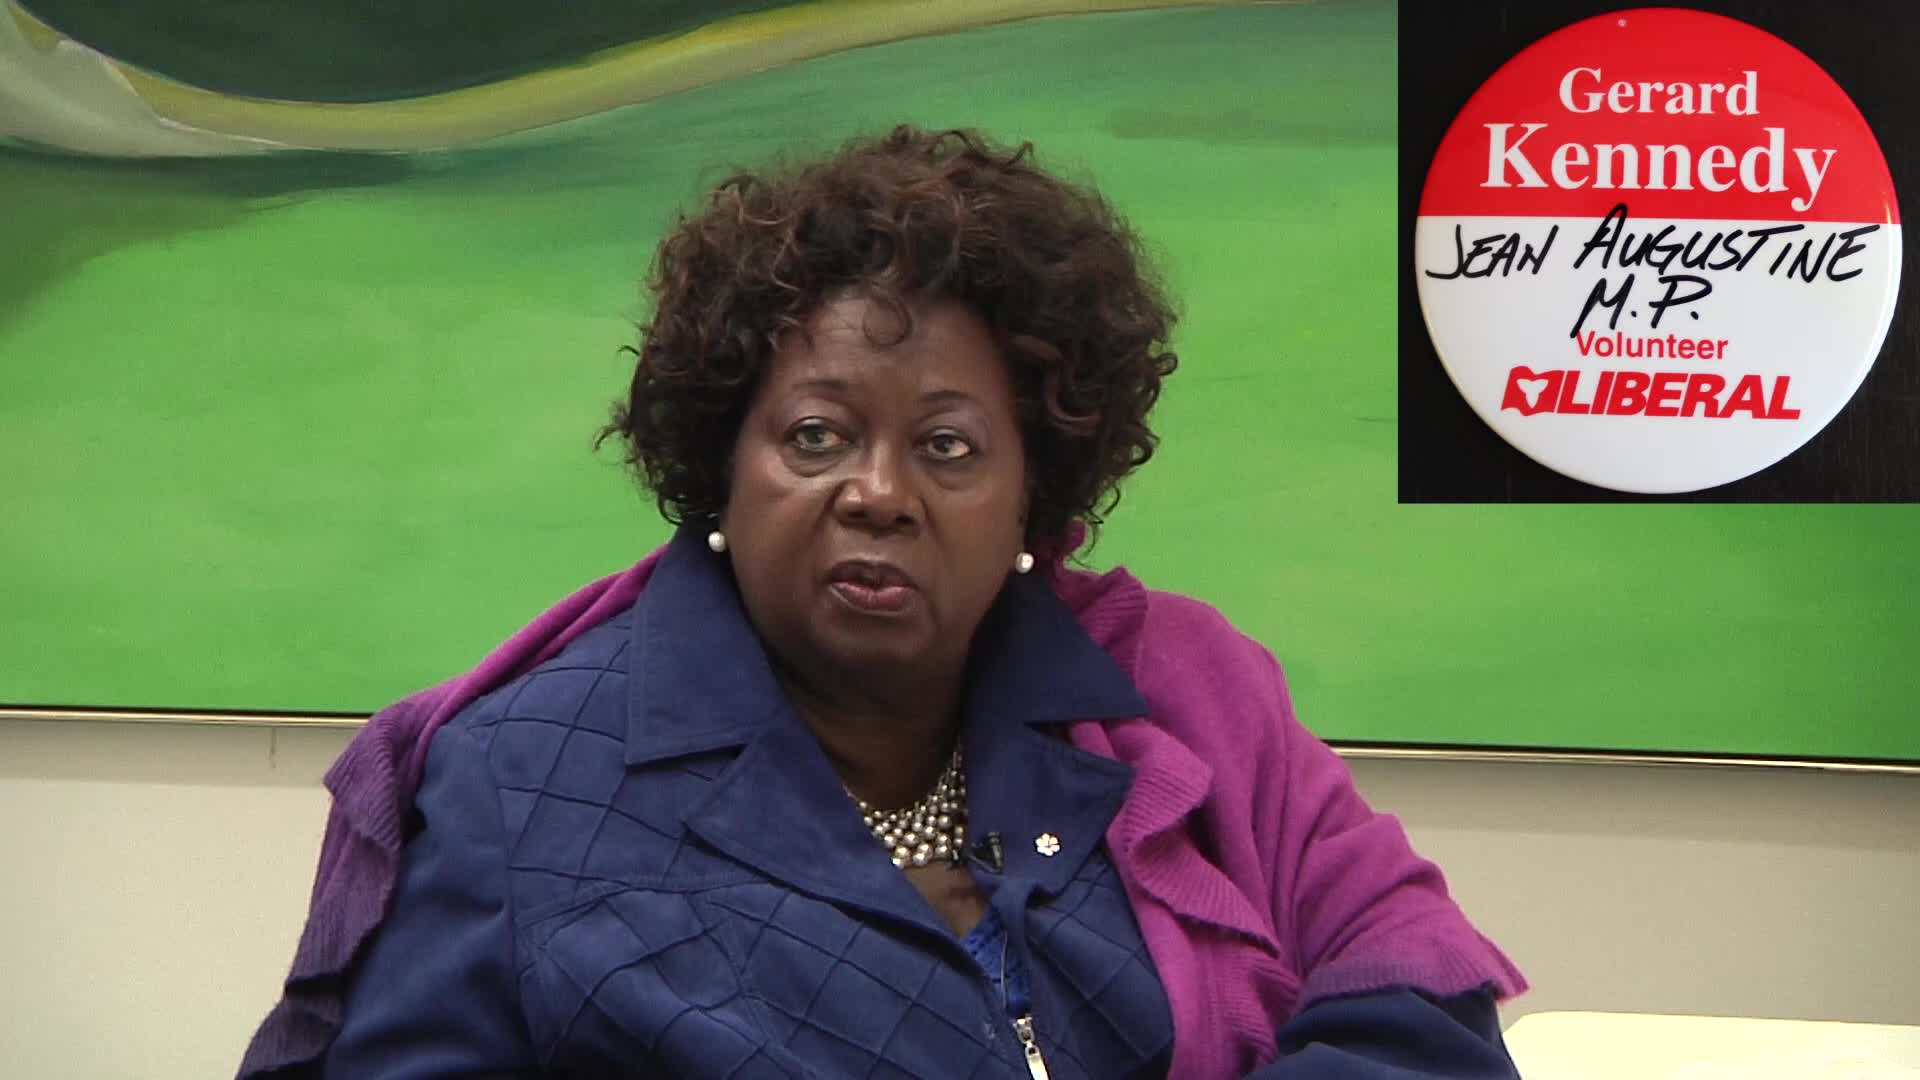 Jean Augustine interview: Gerard Kennedy volunteer button